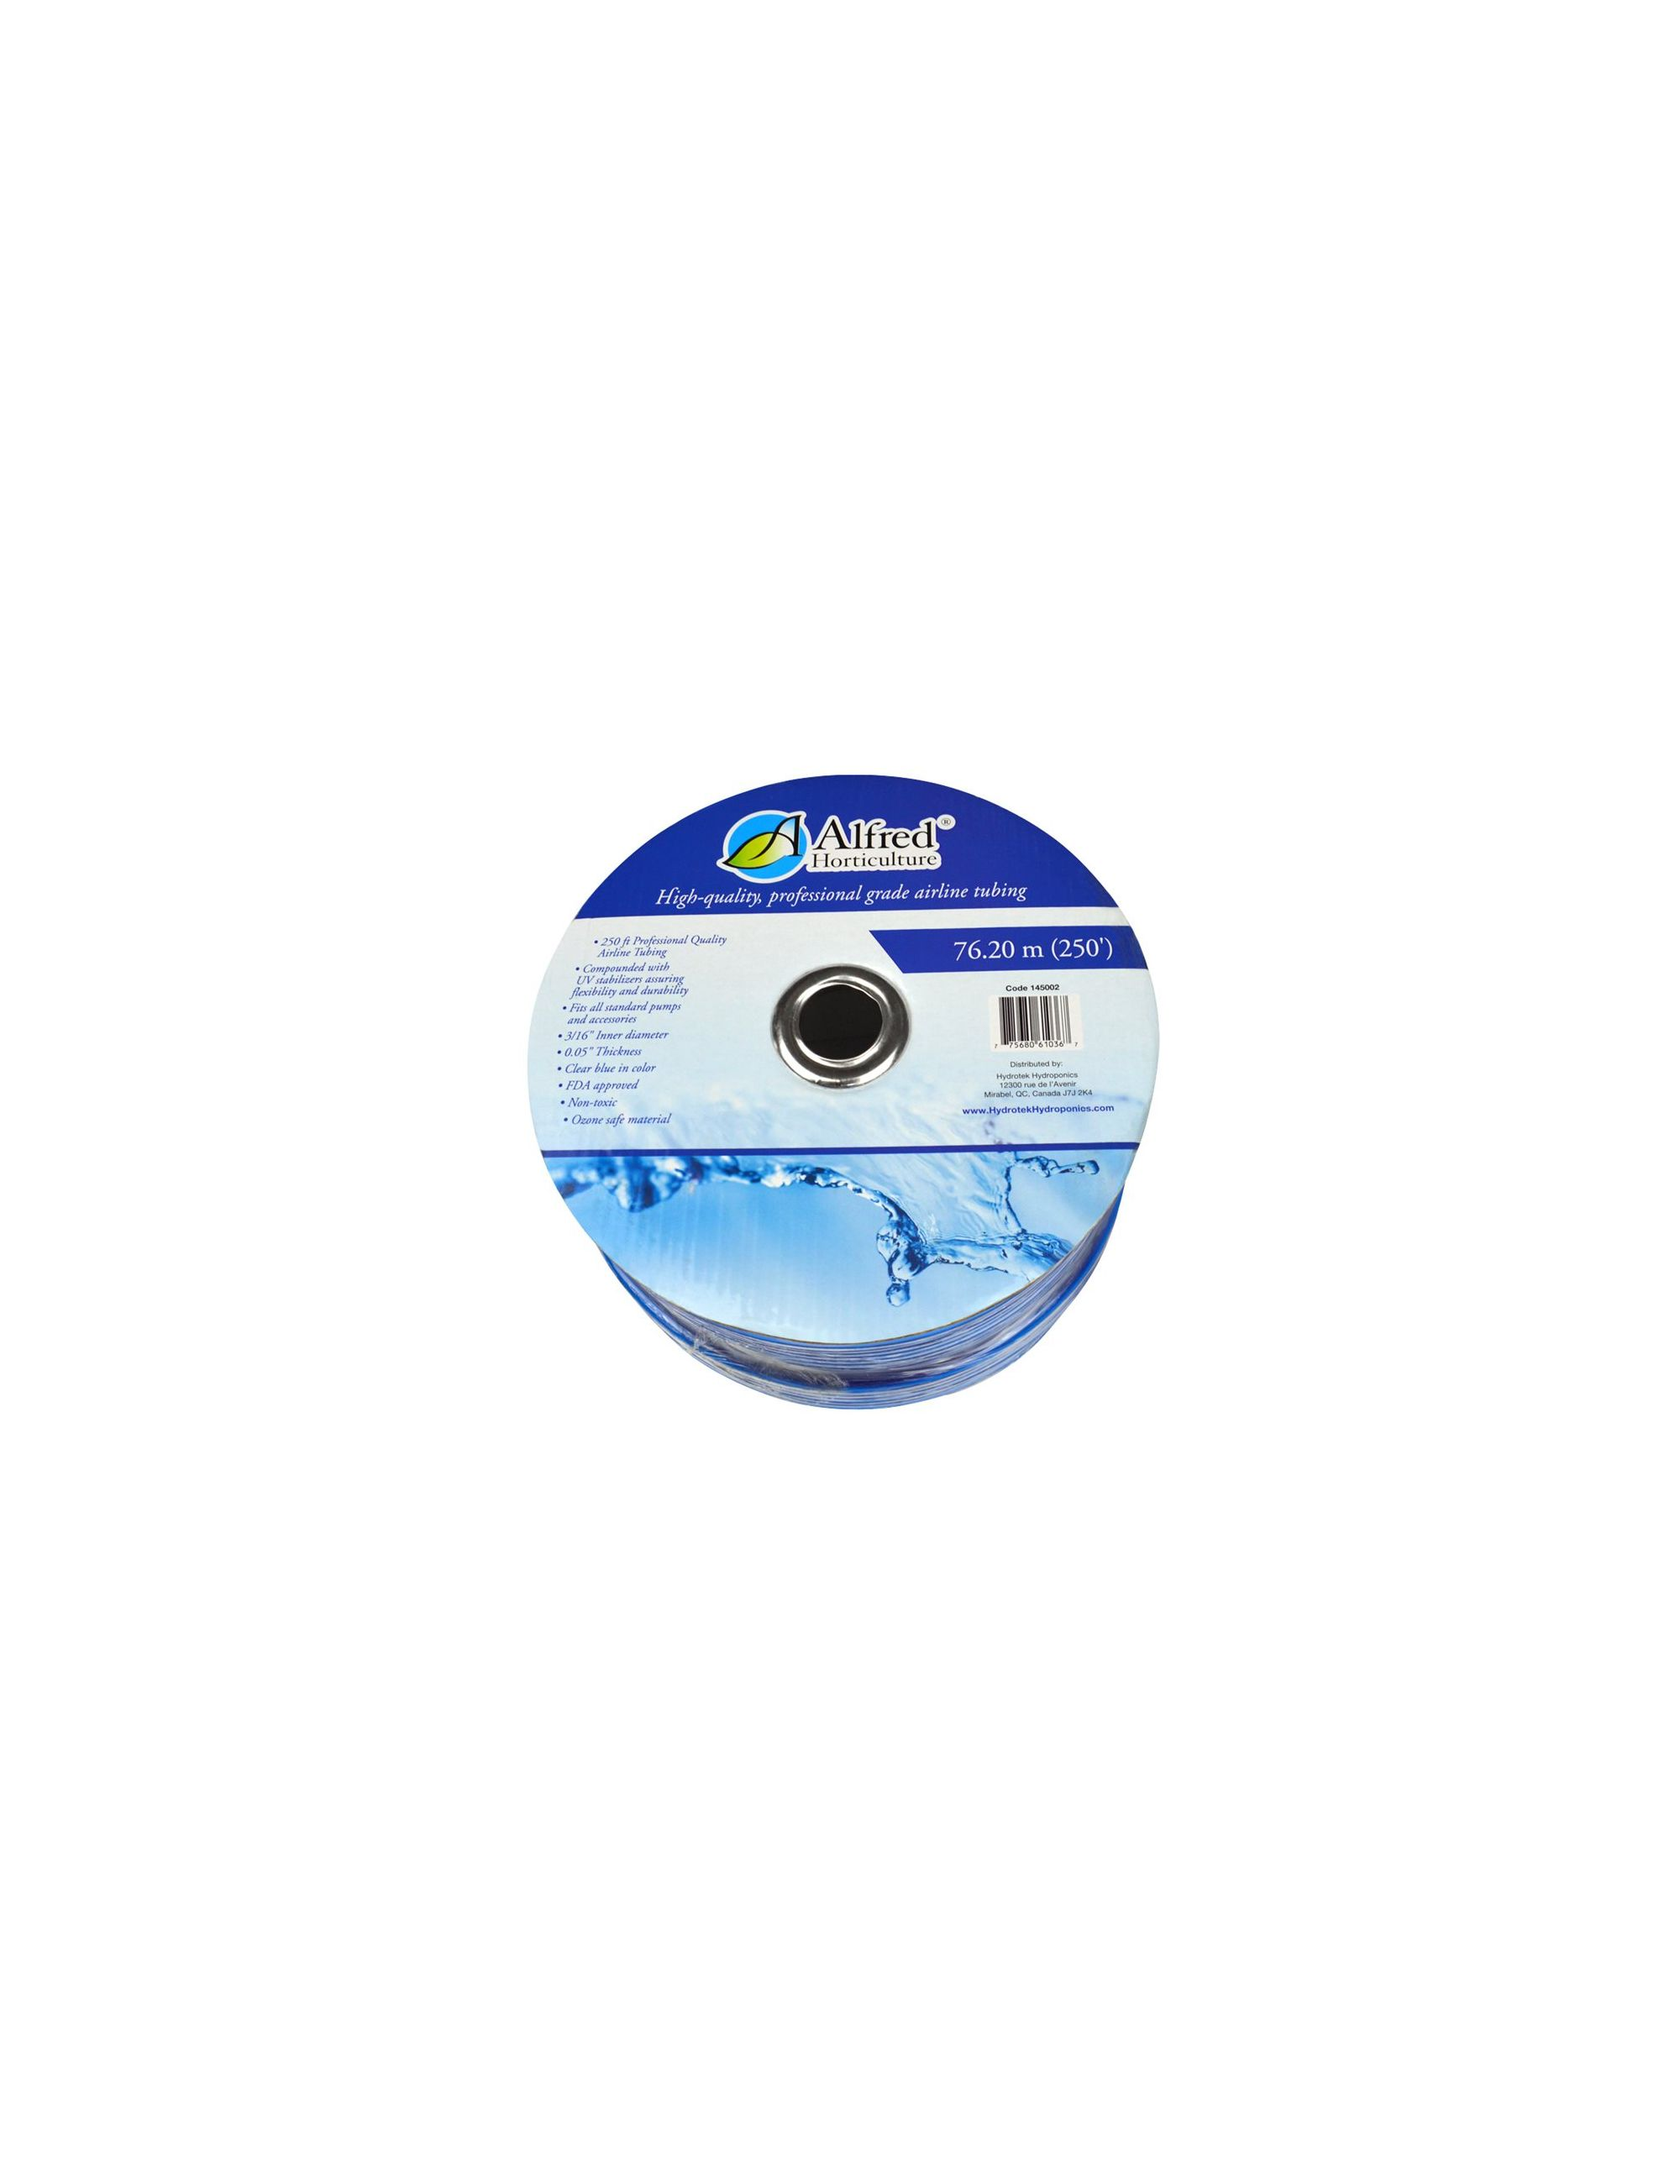 ALFRED HORTICULTURE AIRLINE TUBING BLUE 250'